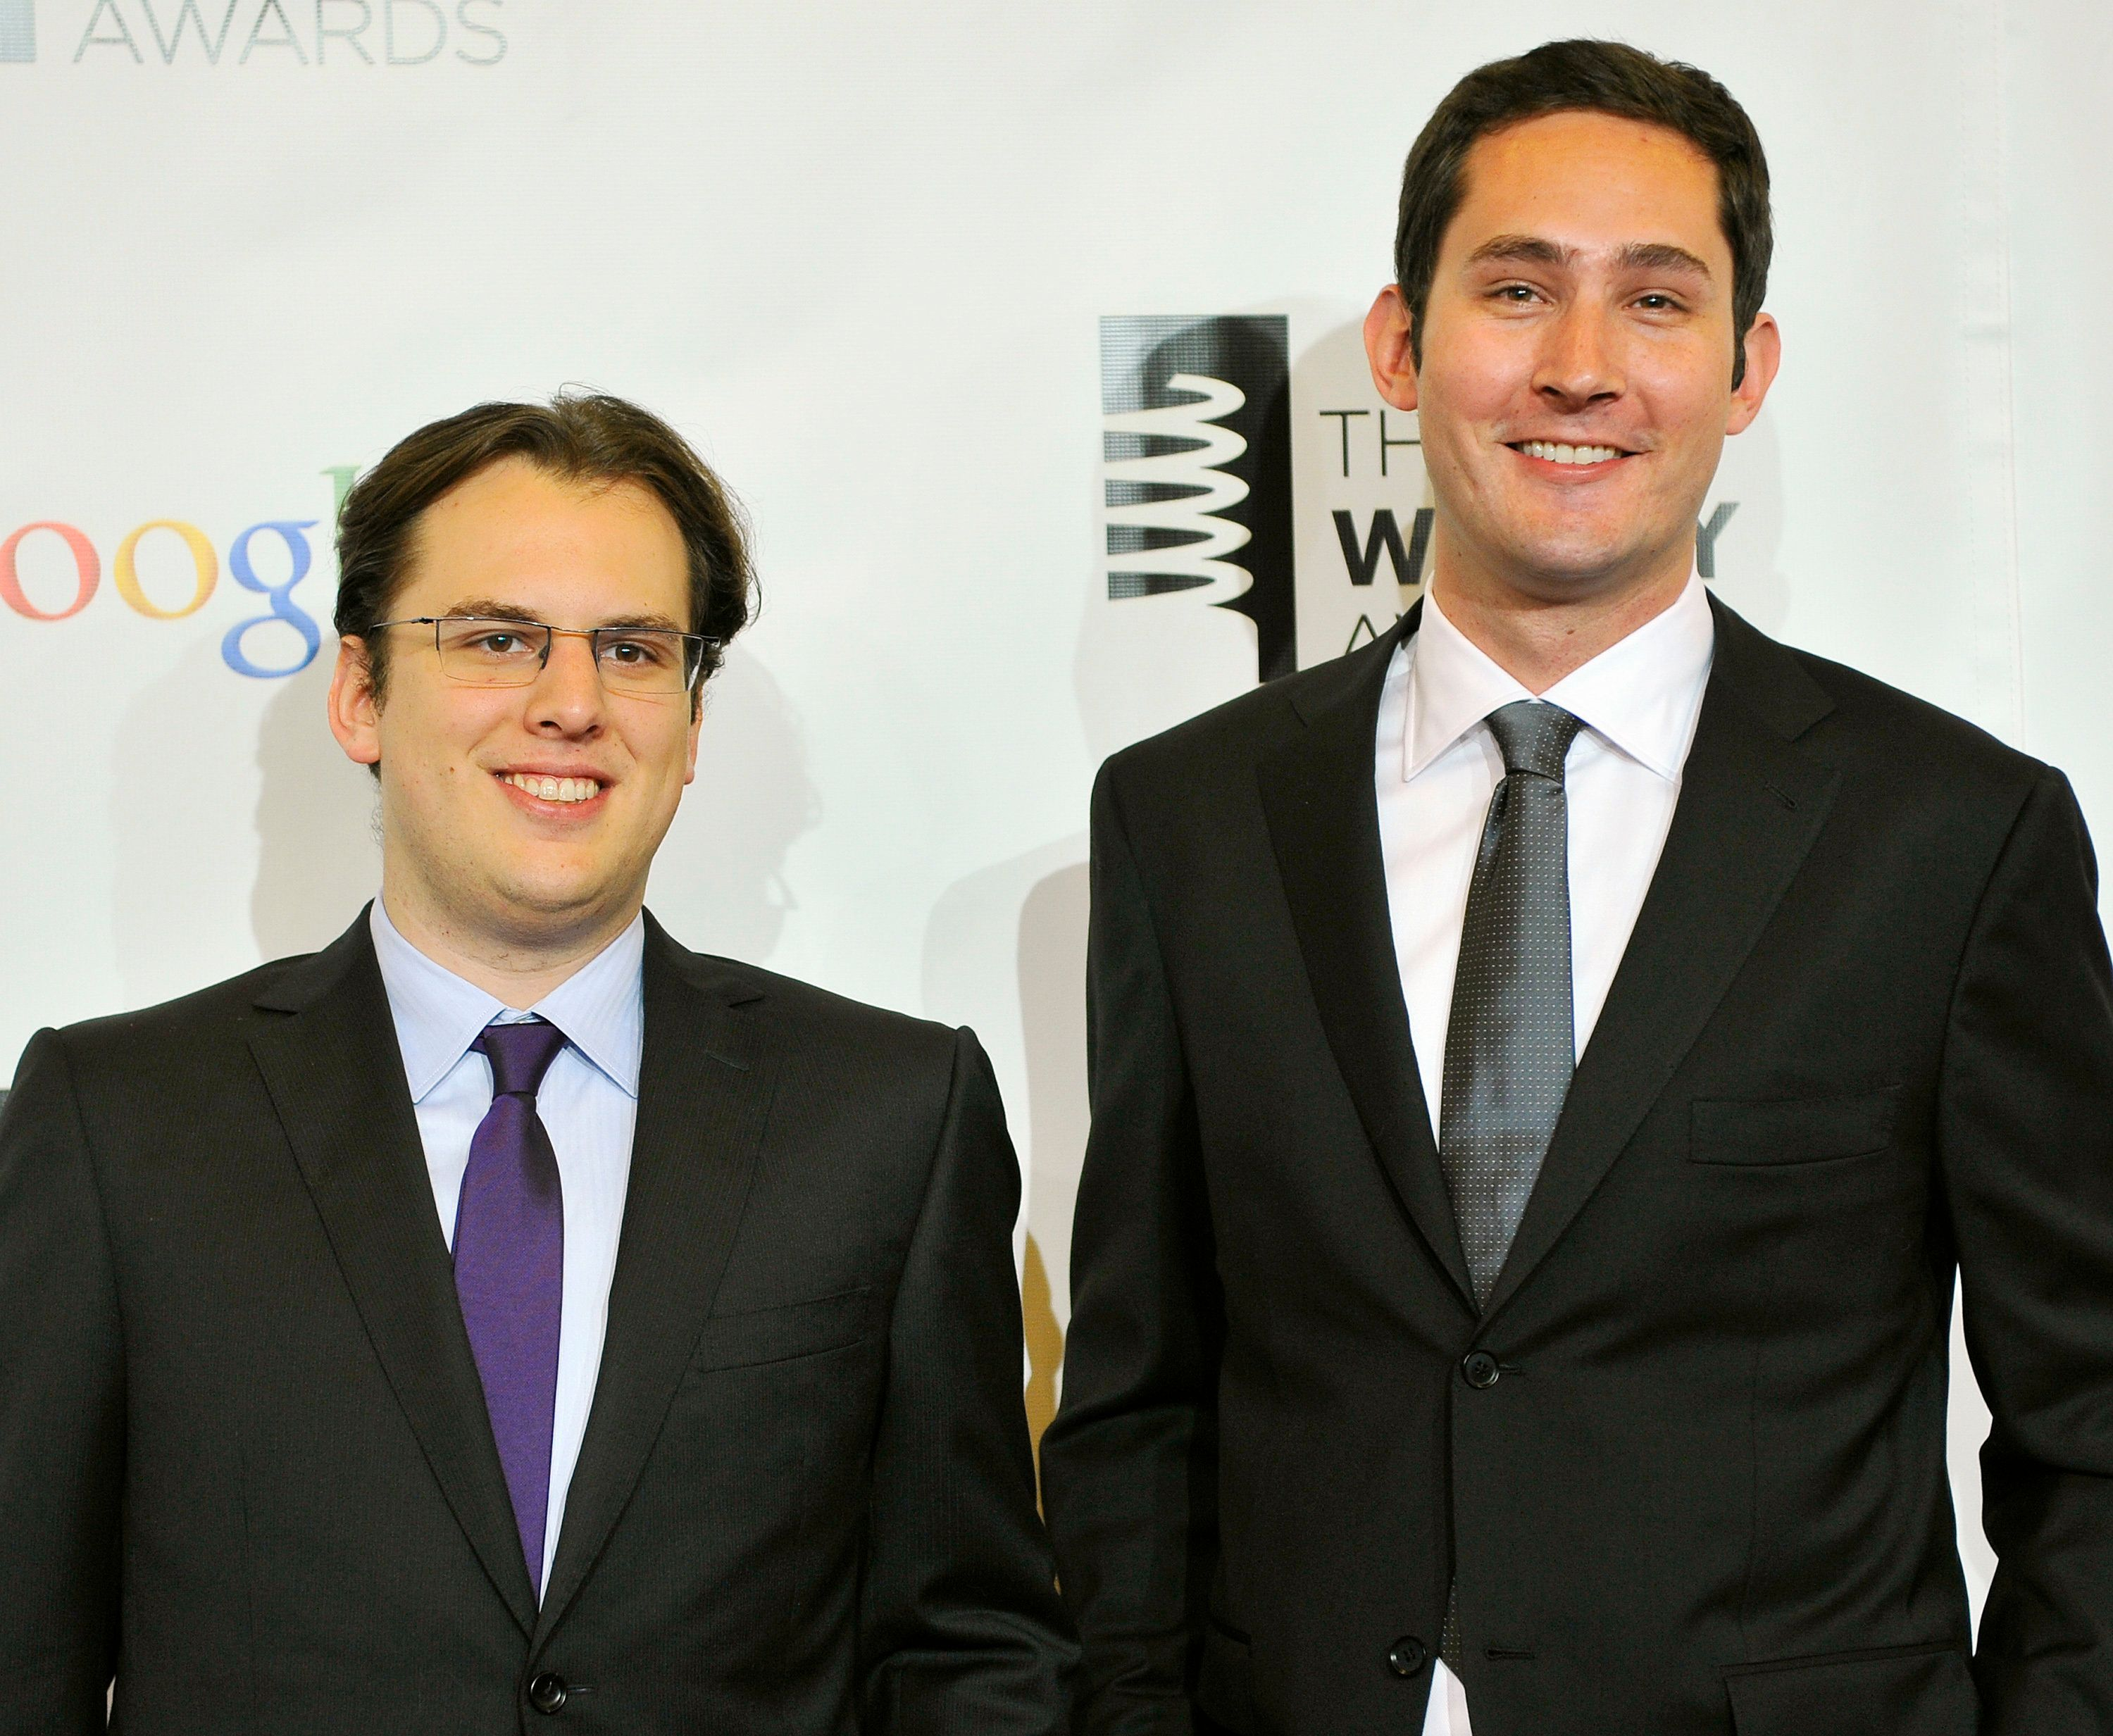 Instagram founders Mike Krieger (L) and Kevin Systrom attend the 16th annual Webby Awards in New York May, 21 2012. REUTERS/Stephen Chernin (UNITED STATES - Tags: SCIENCE TECHNOLOGY ENTERTAINMENT)